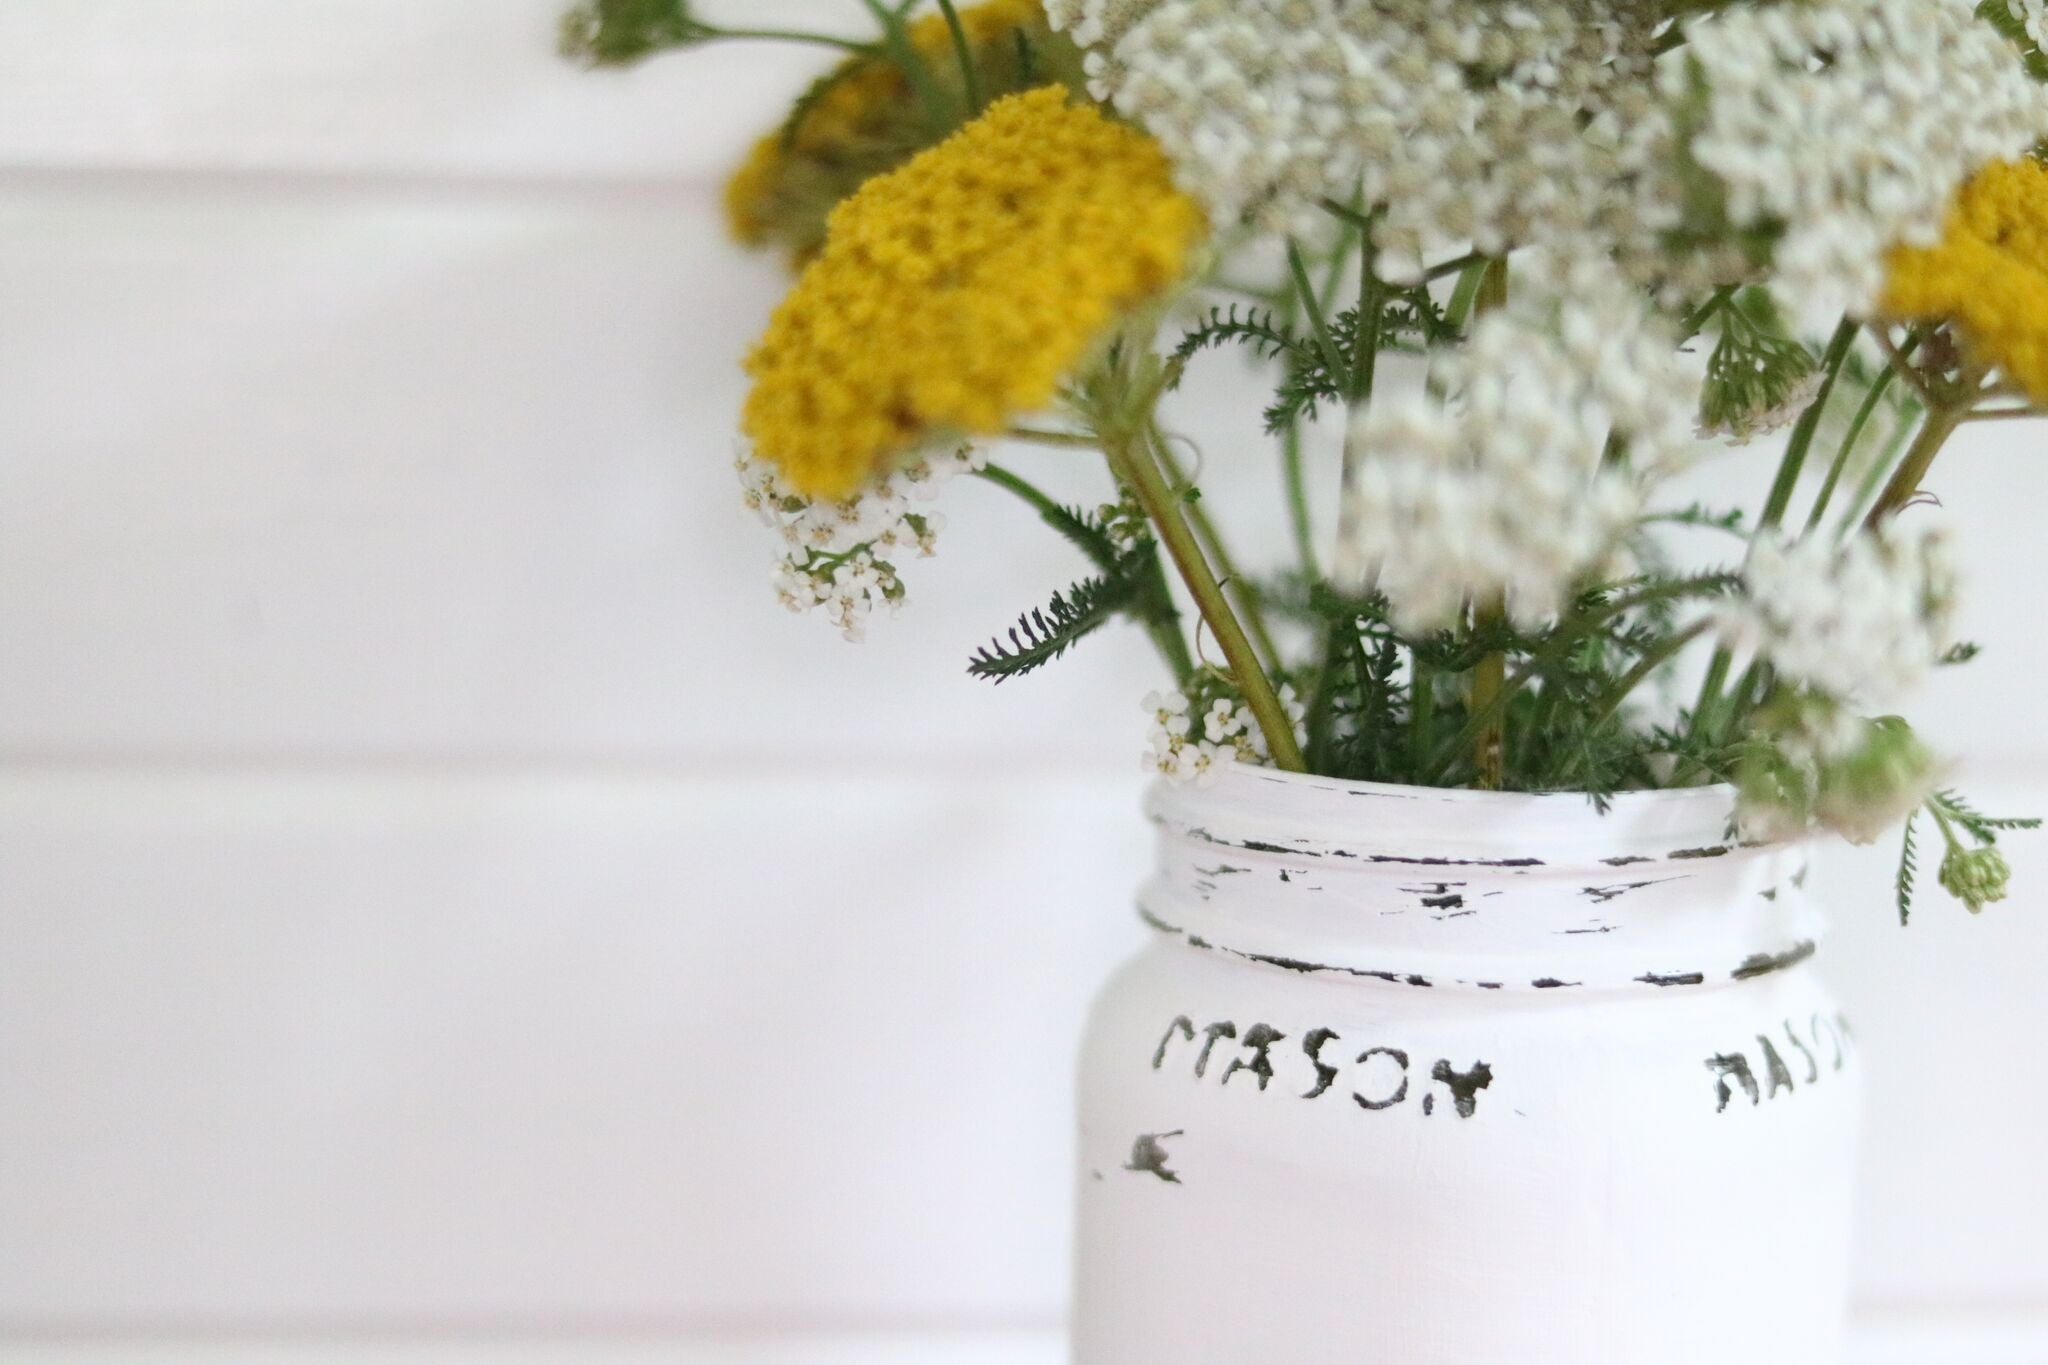 Repurposing Your Candle: Mason Jar Craft Ideas – Antique Candle Works